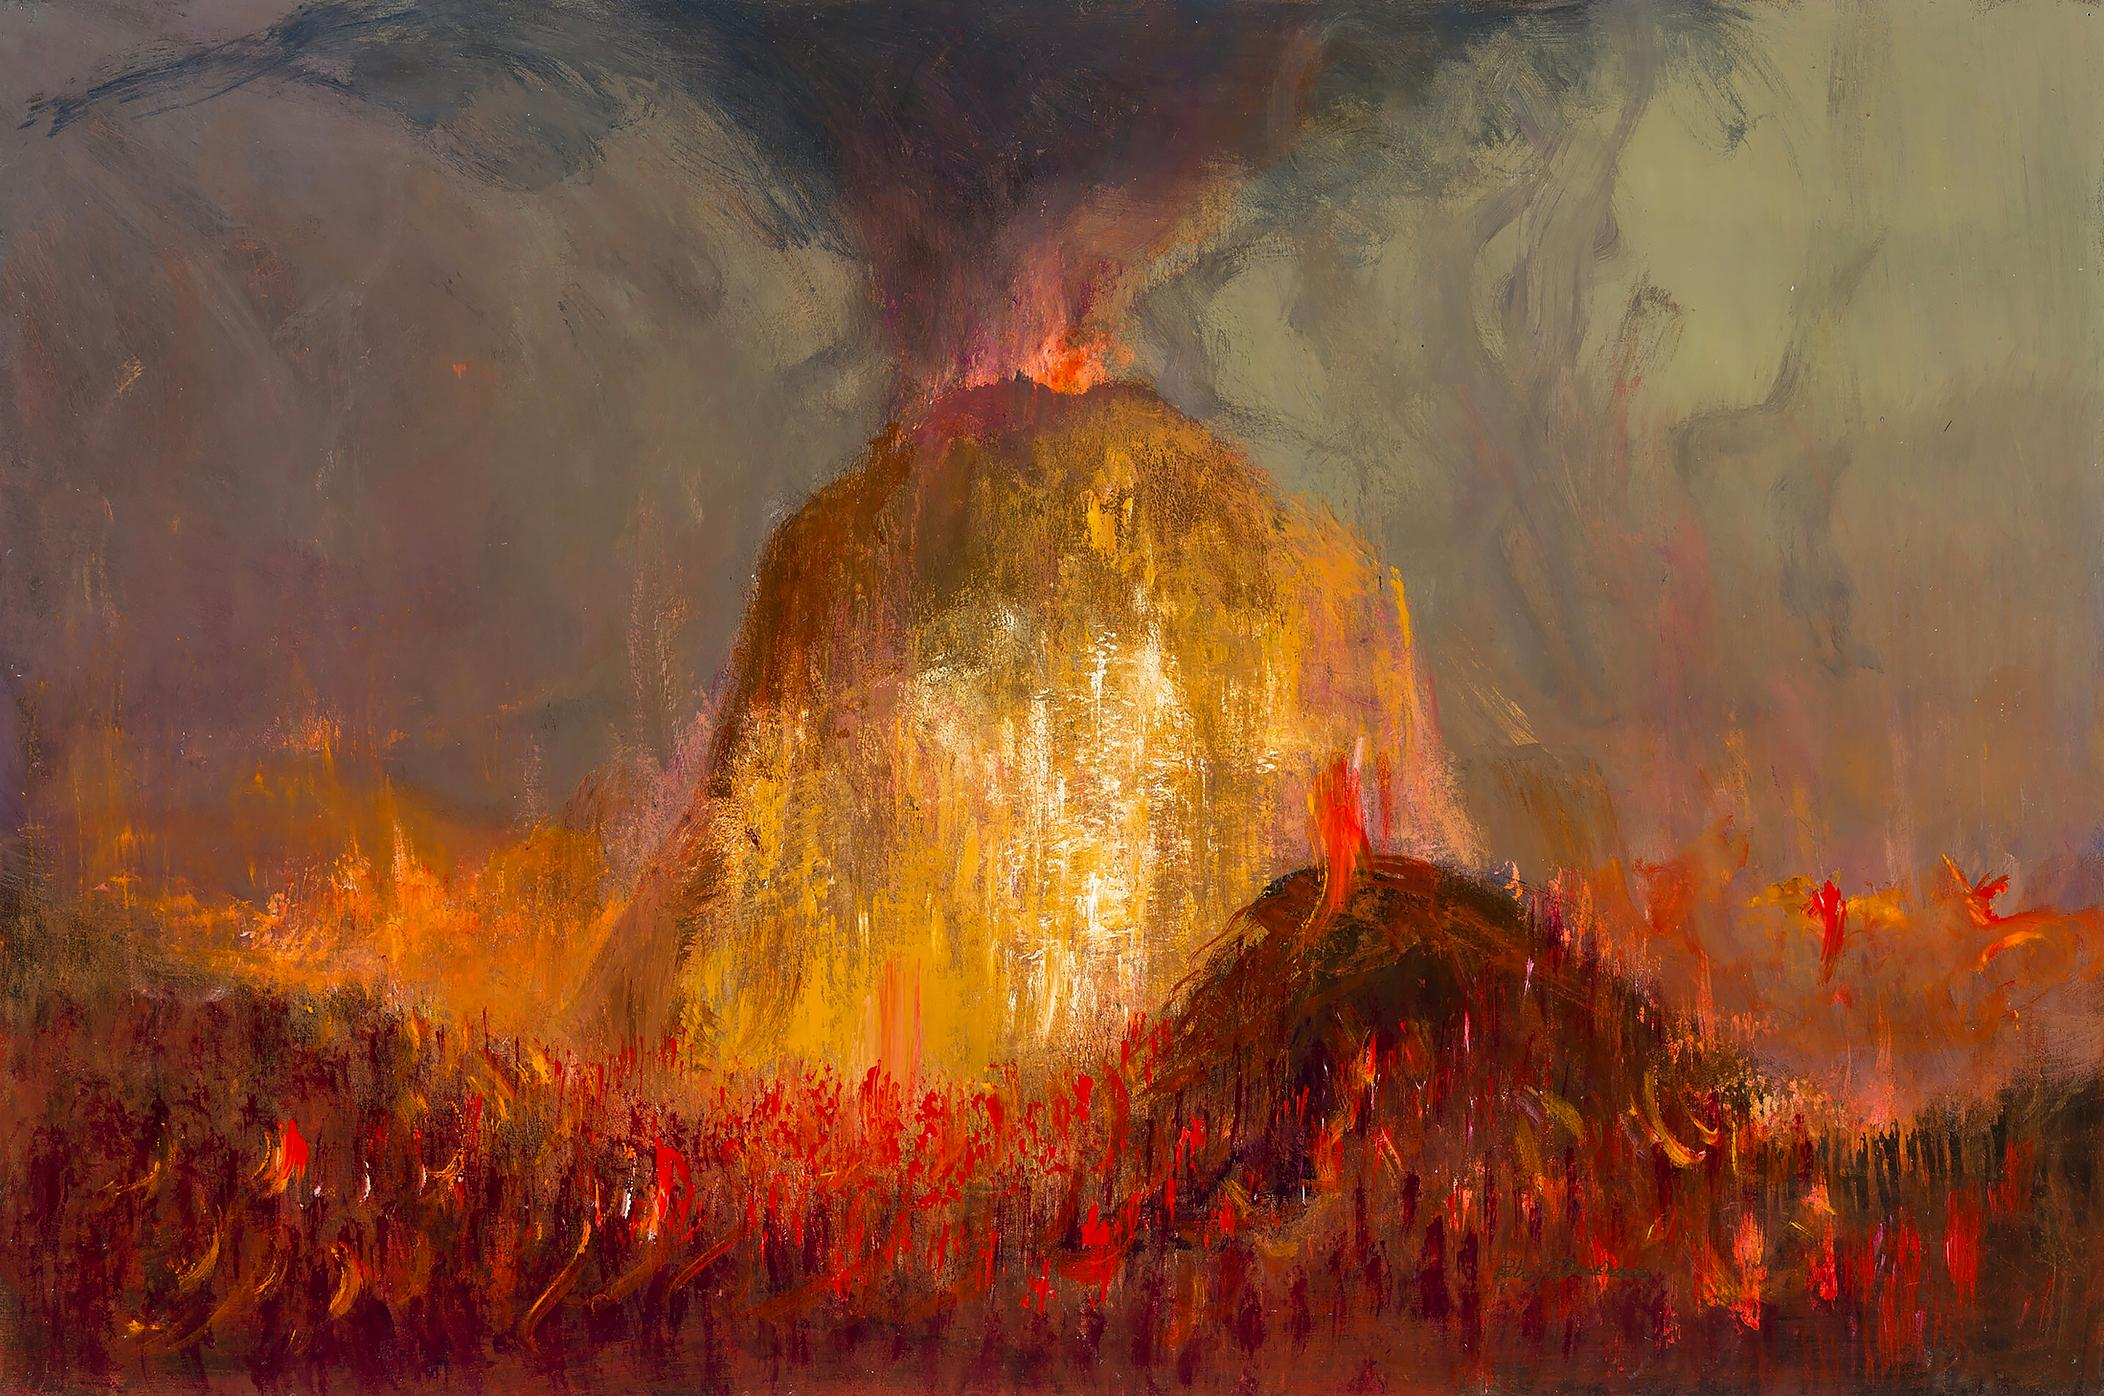 Volcano Eruption - Explosive Fire Lava Flow from Hell,